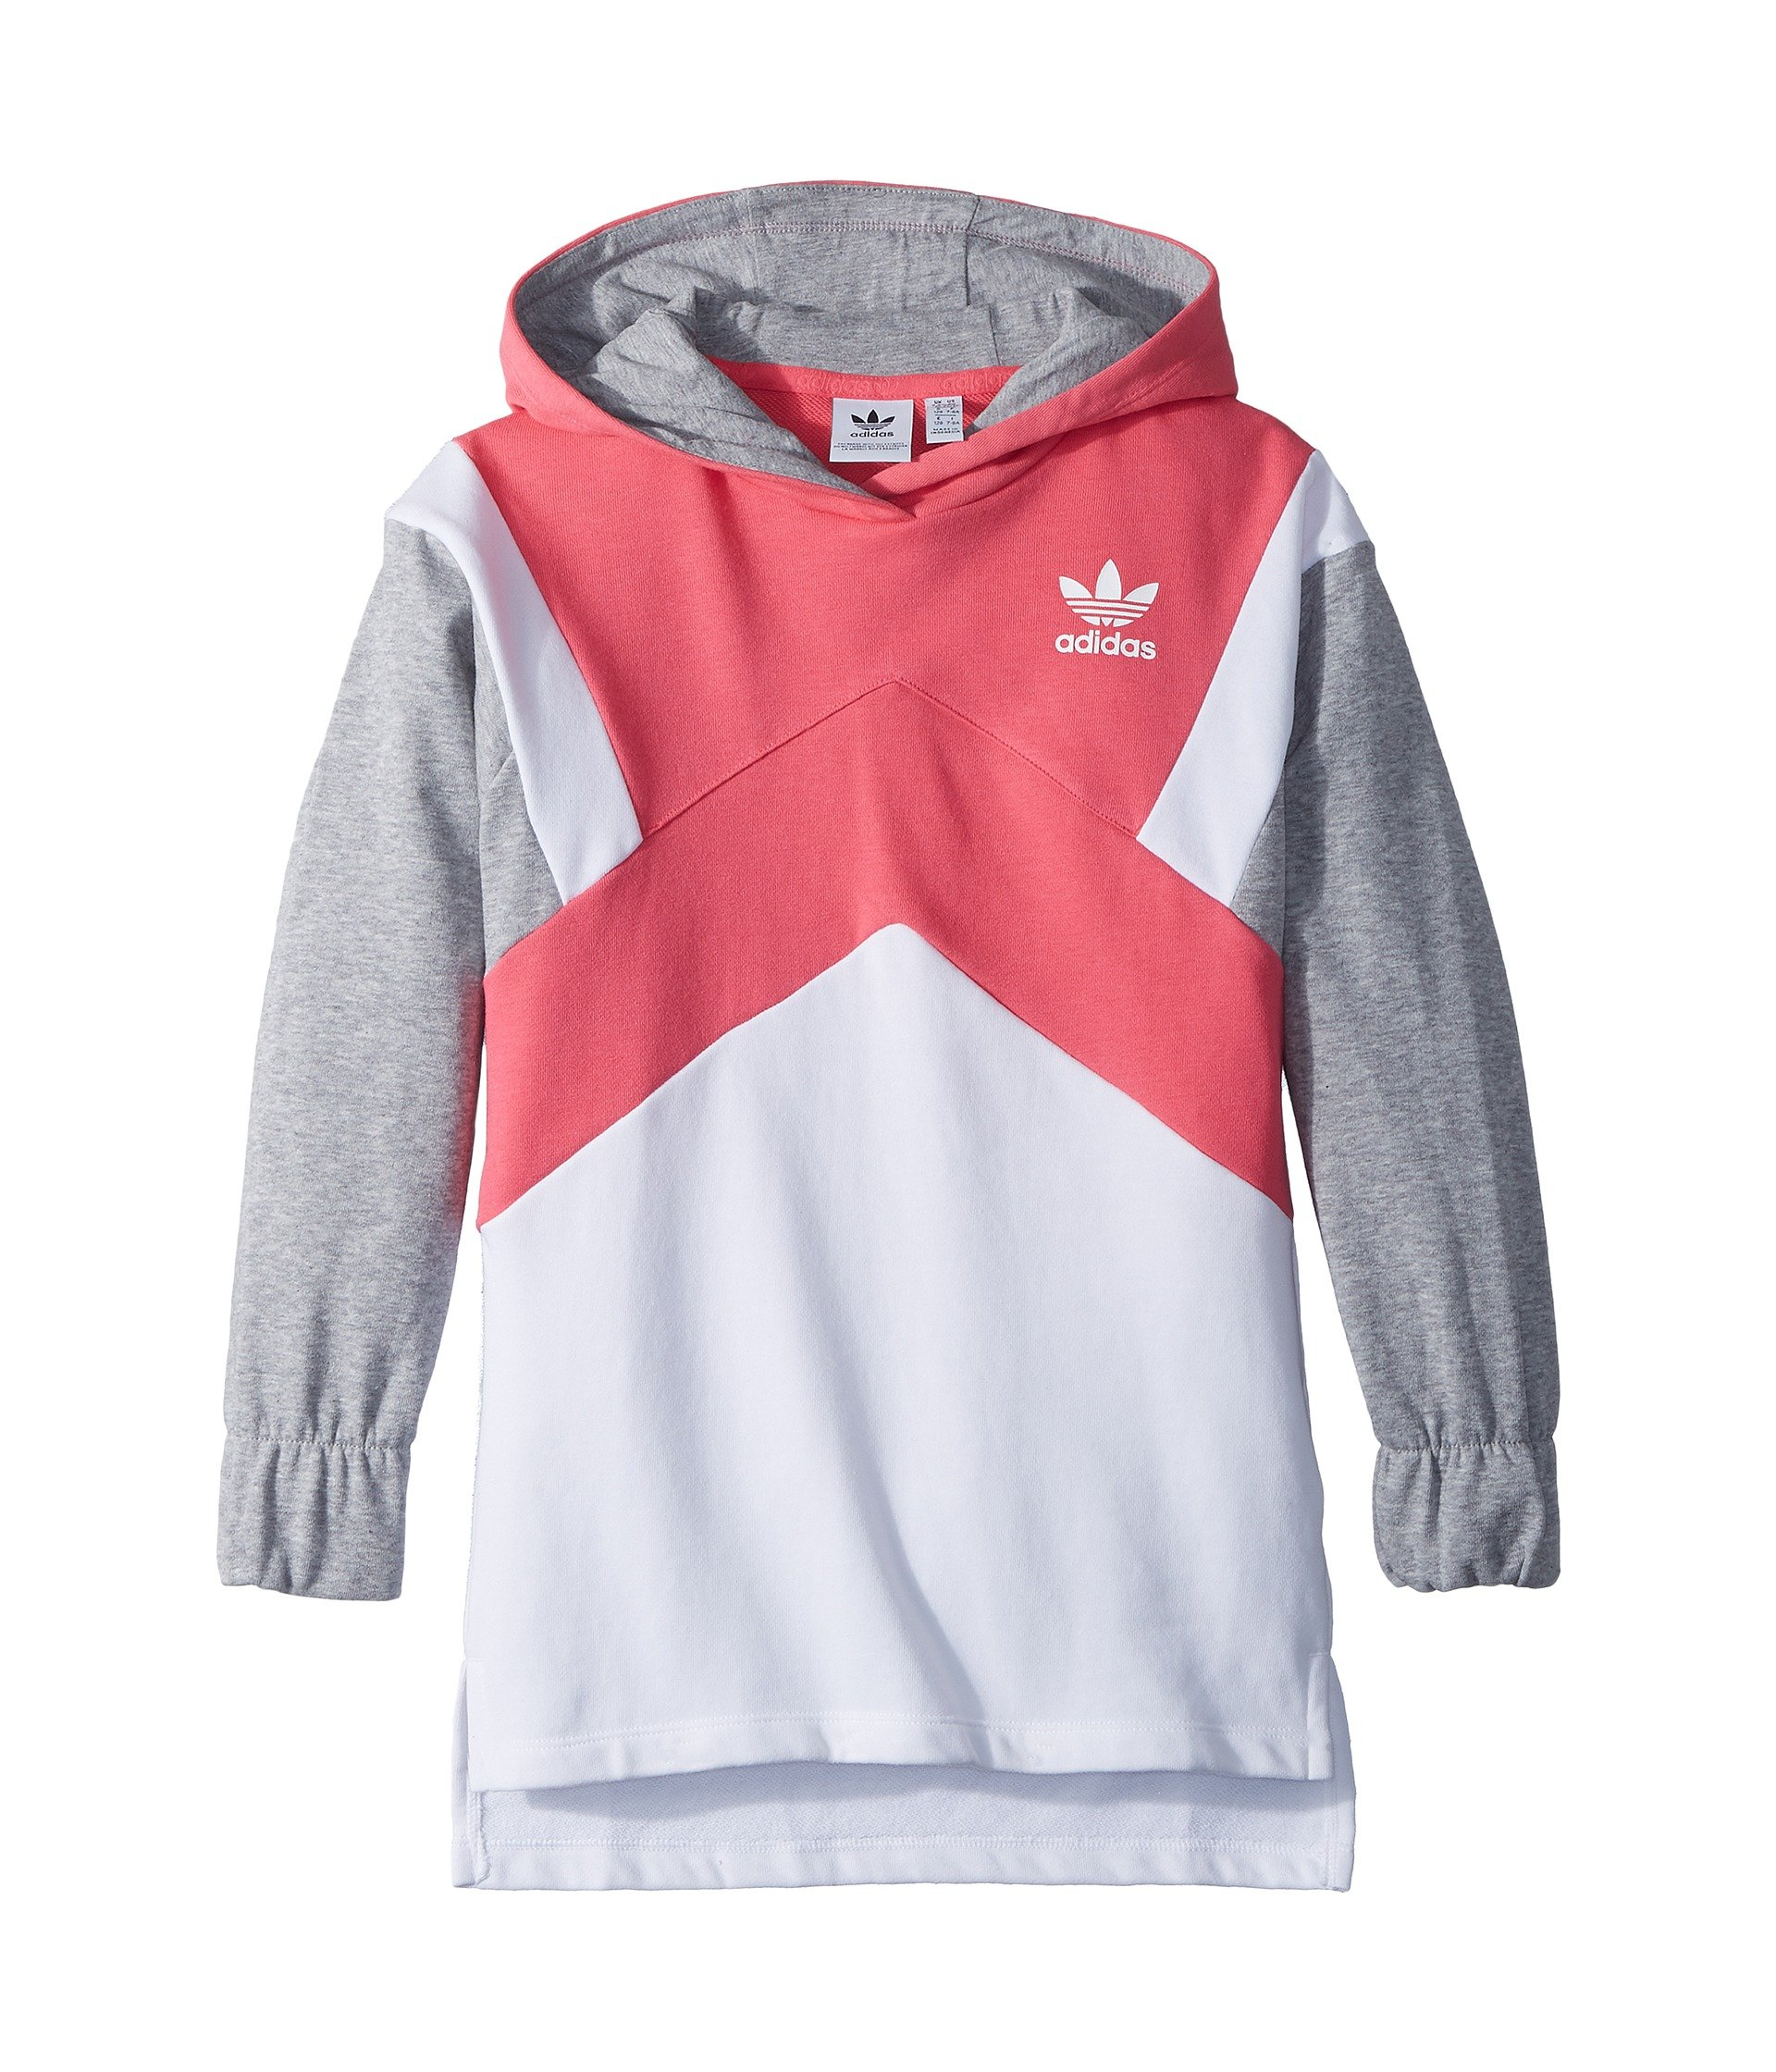 adidas Originals Kids Girl's Modern French Terry Hoodie (Little Kids/Big Kids) Real Pink/White/Medium Grey Heather Small